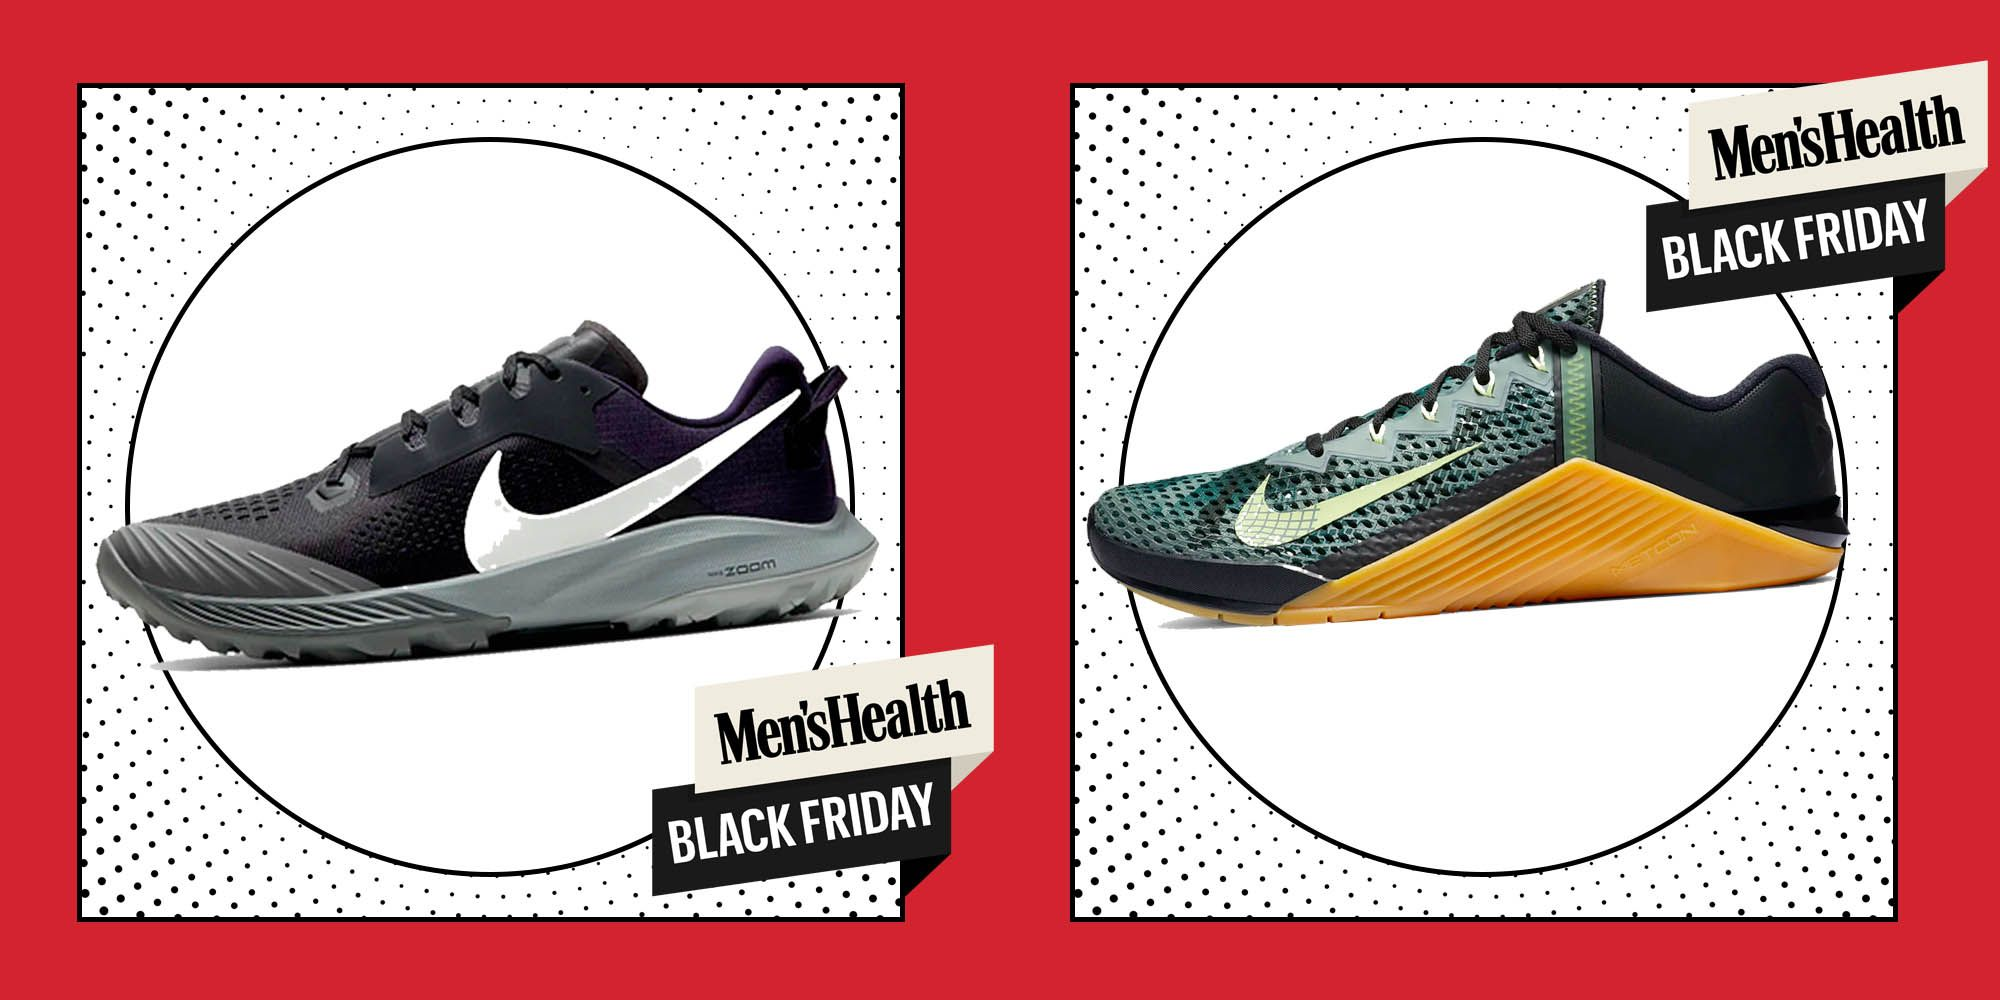 Inolvidable obra maestra Furioso  Nike Black Friday deals 2020: what to expect and when